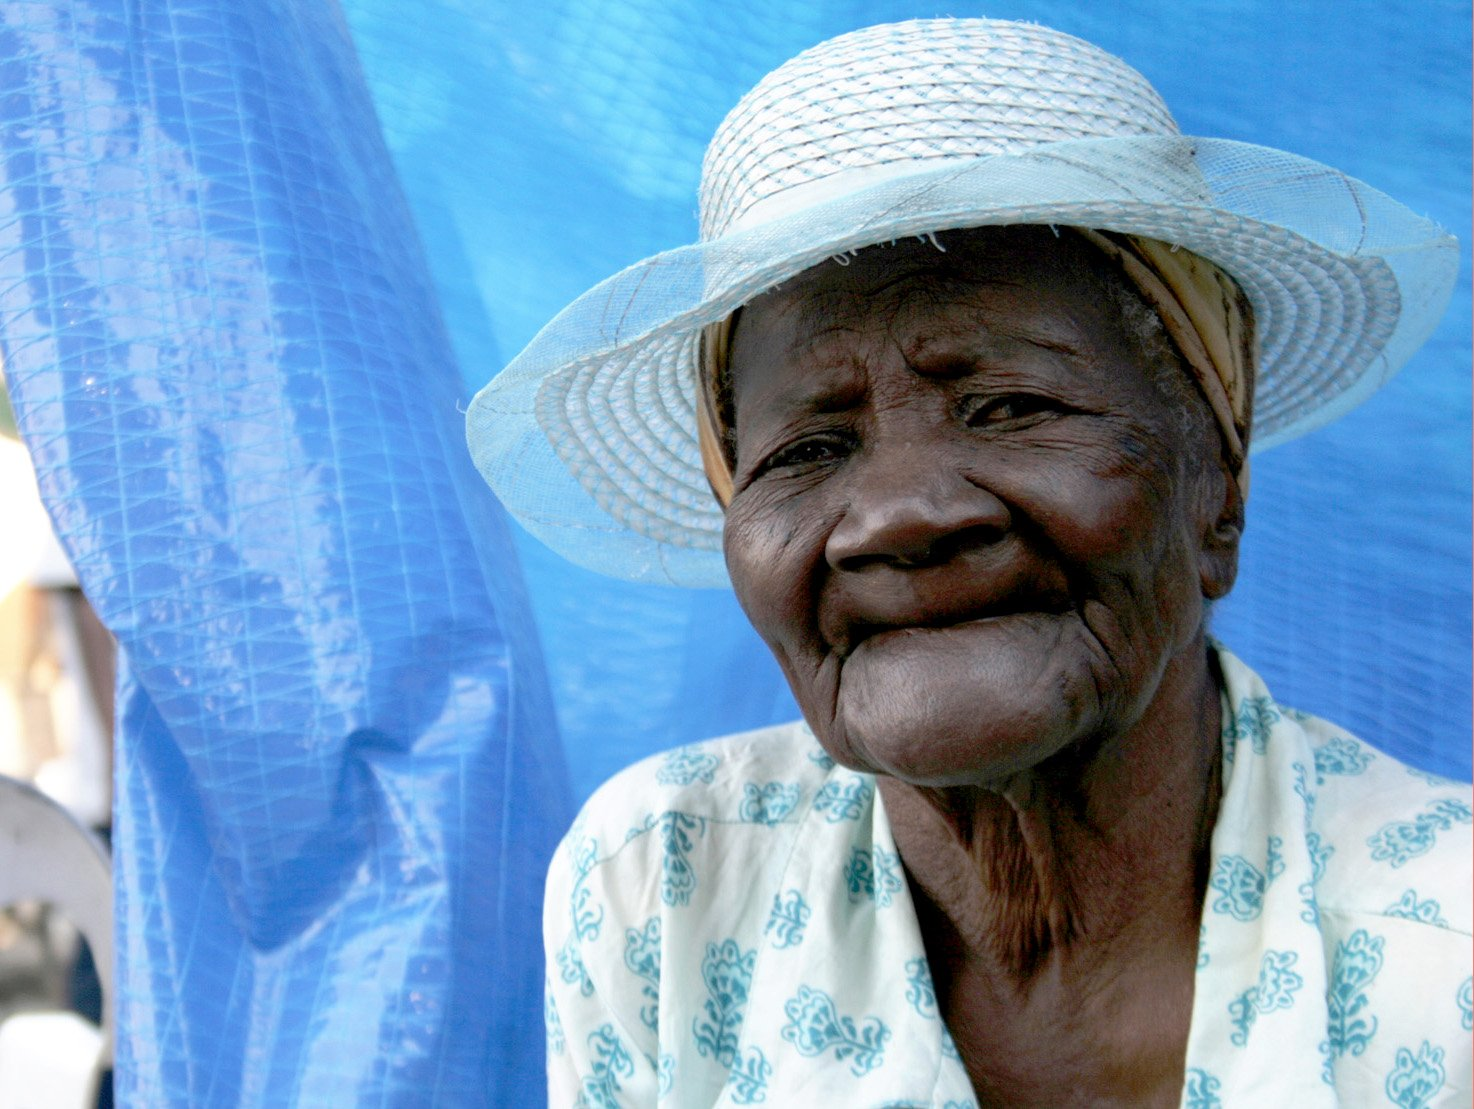 More than 200,000 elderly people were affected by the January 2010 earthquake in Haiti